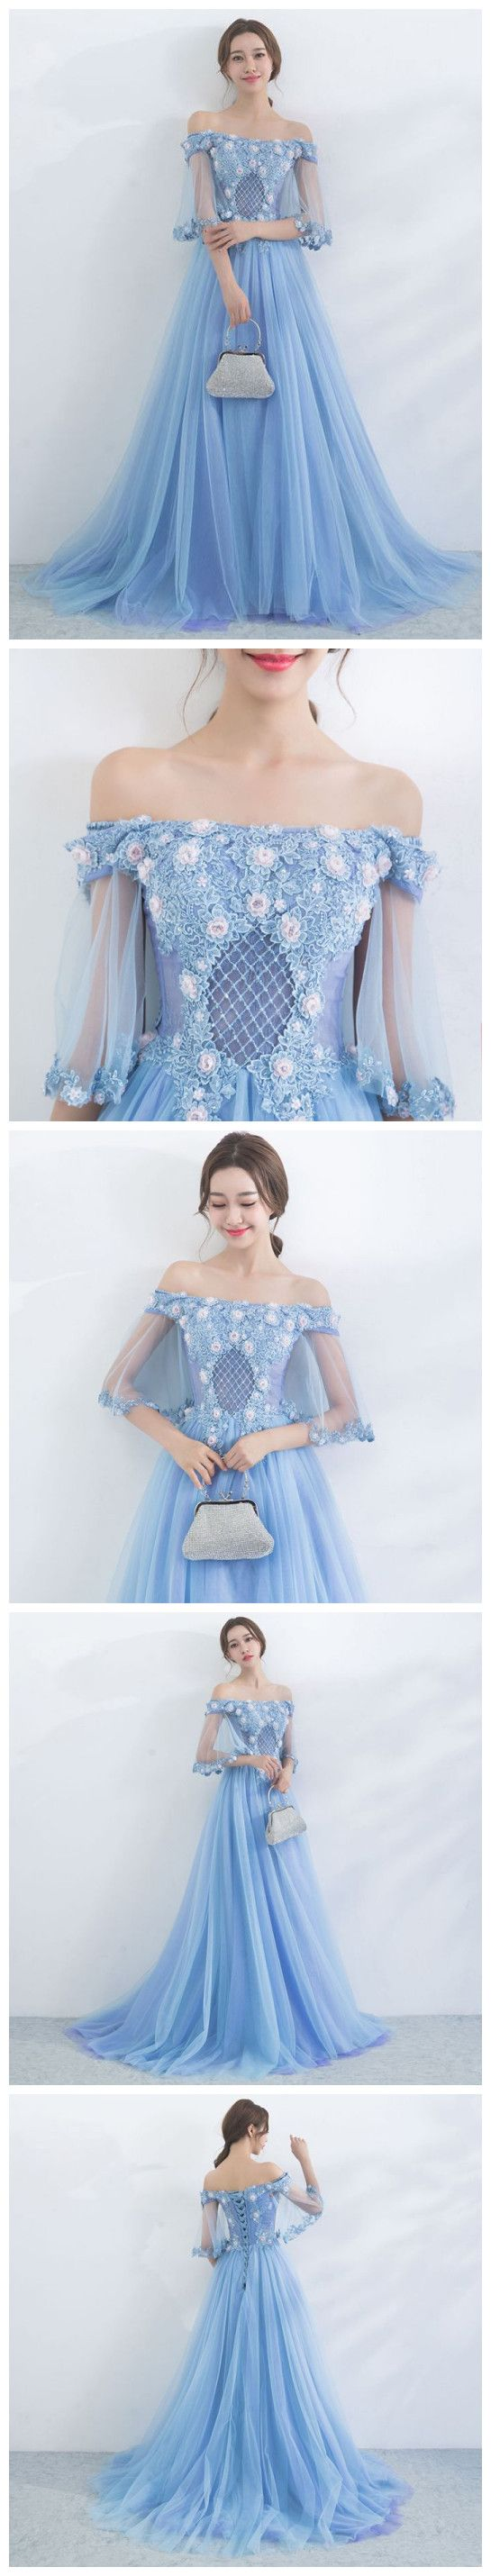 CHIC A-LINE OFF THE SHOULDER BLUE APPLIQUE FLOWER MODEST LONG PROM DRESS EVENING DRESS AM530 #fashion #style #long #prom #party #evening #beauty #chic #modest #love #bridal #promdress #promdresslong #longpromdresses #longpromdress #eveningdress #promdresses #lightbluepromdress